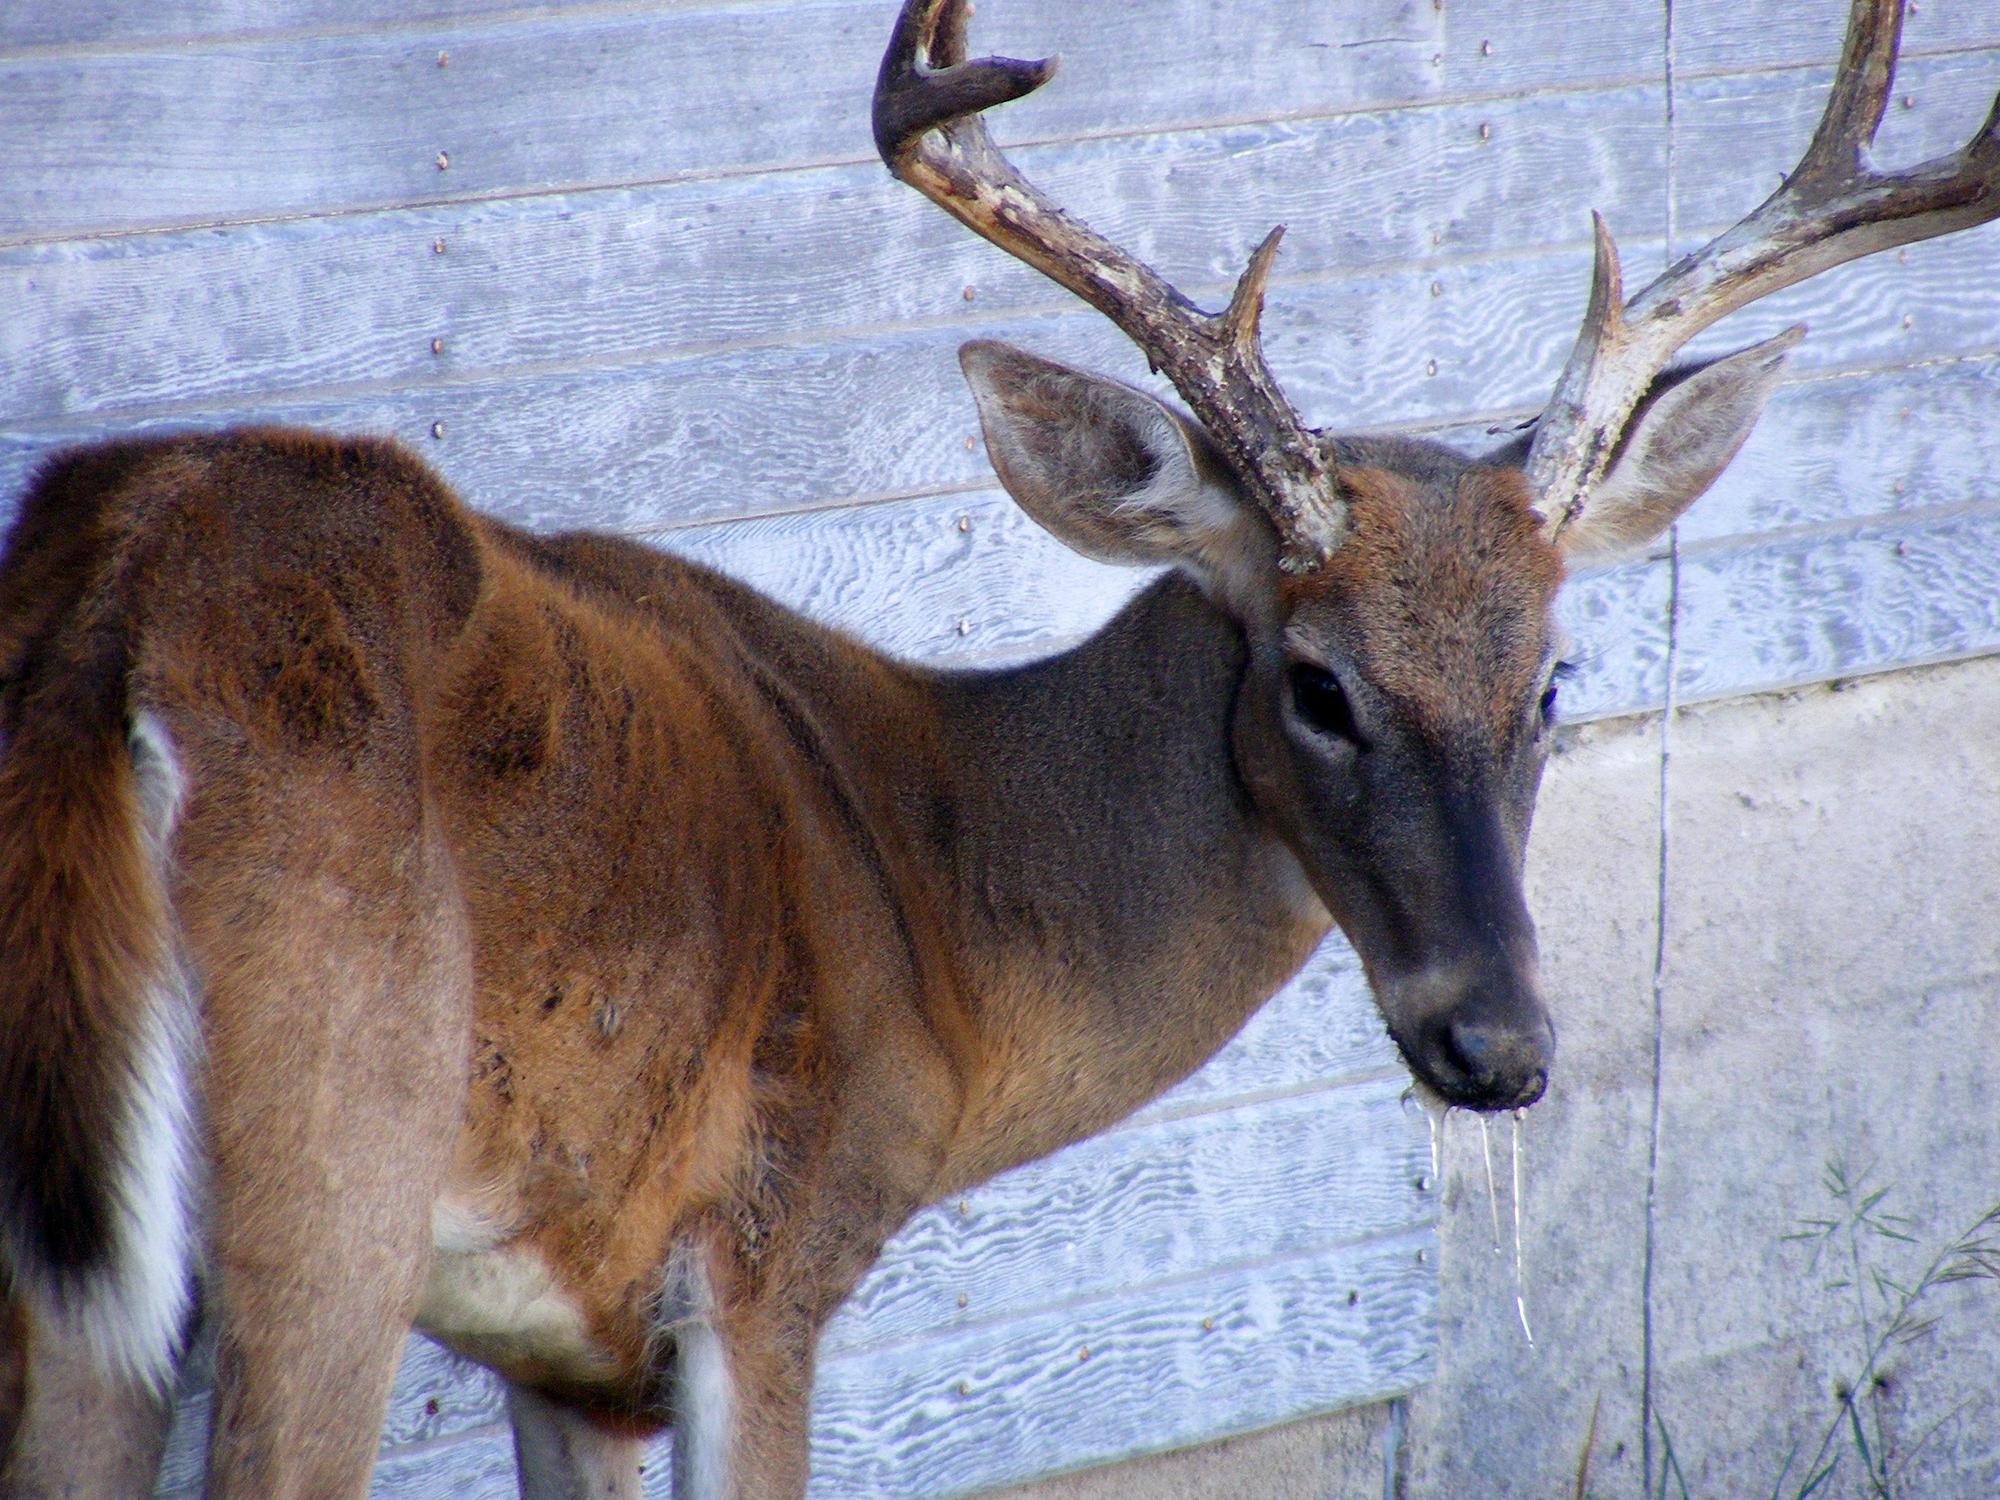 A thin, eight-point buck stands beside a wall with drool coming from his mouth.